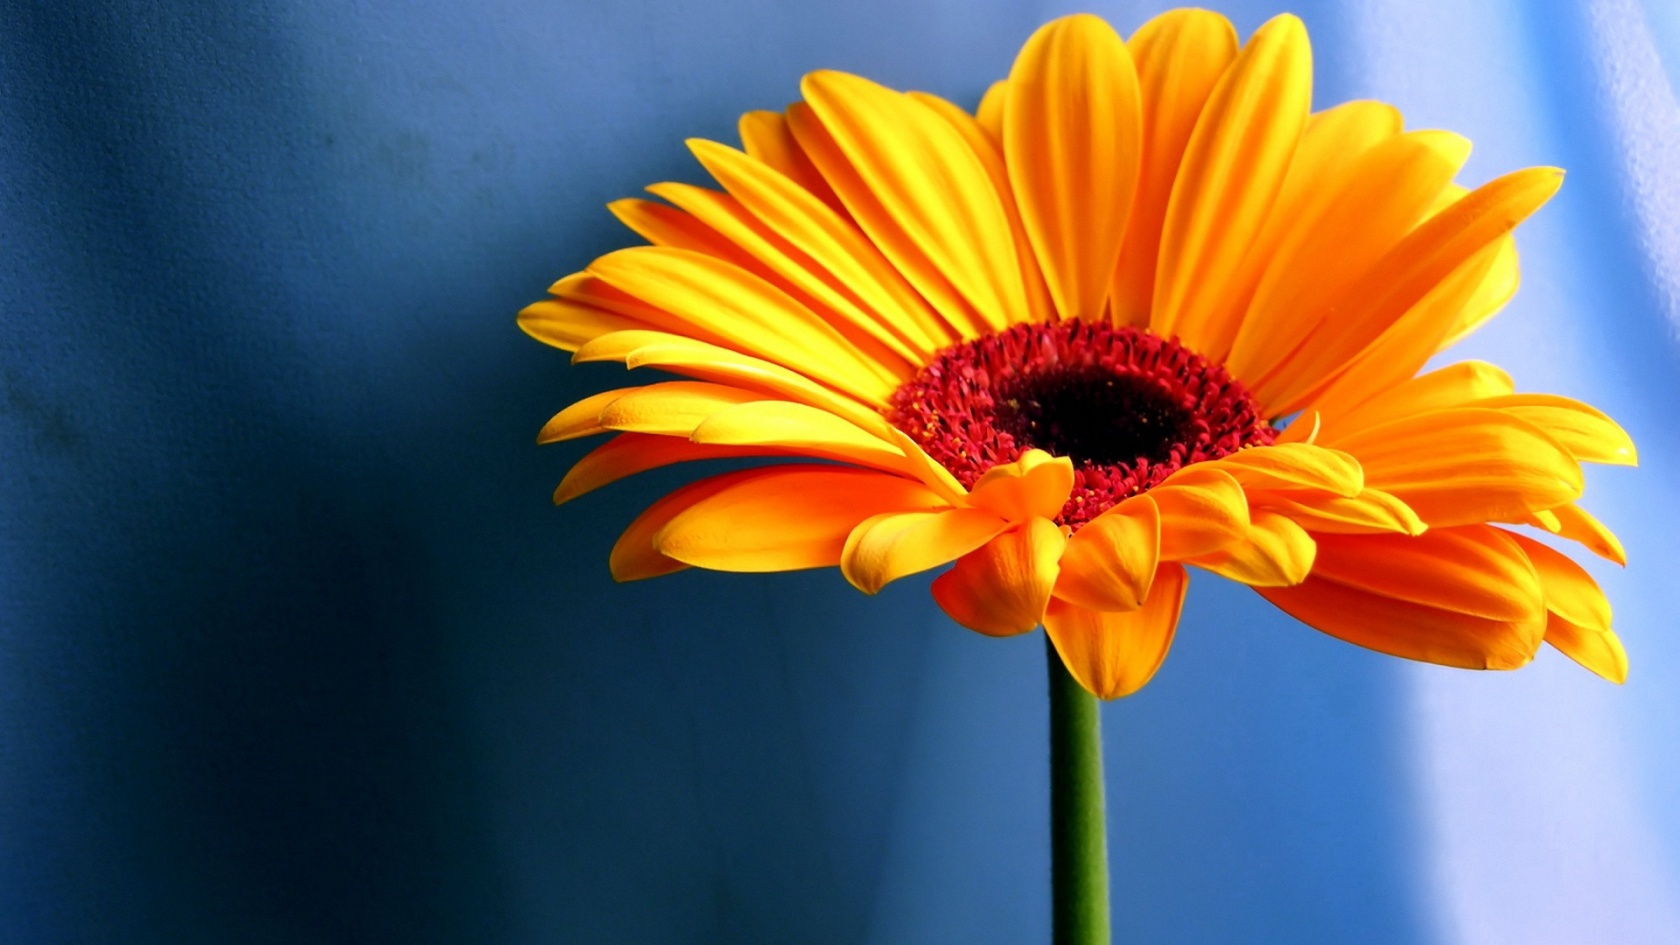 Flowers Wallpapers   Part 5 1680x945